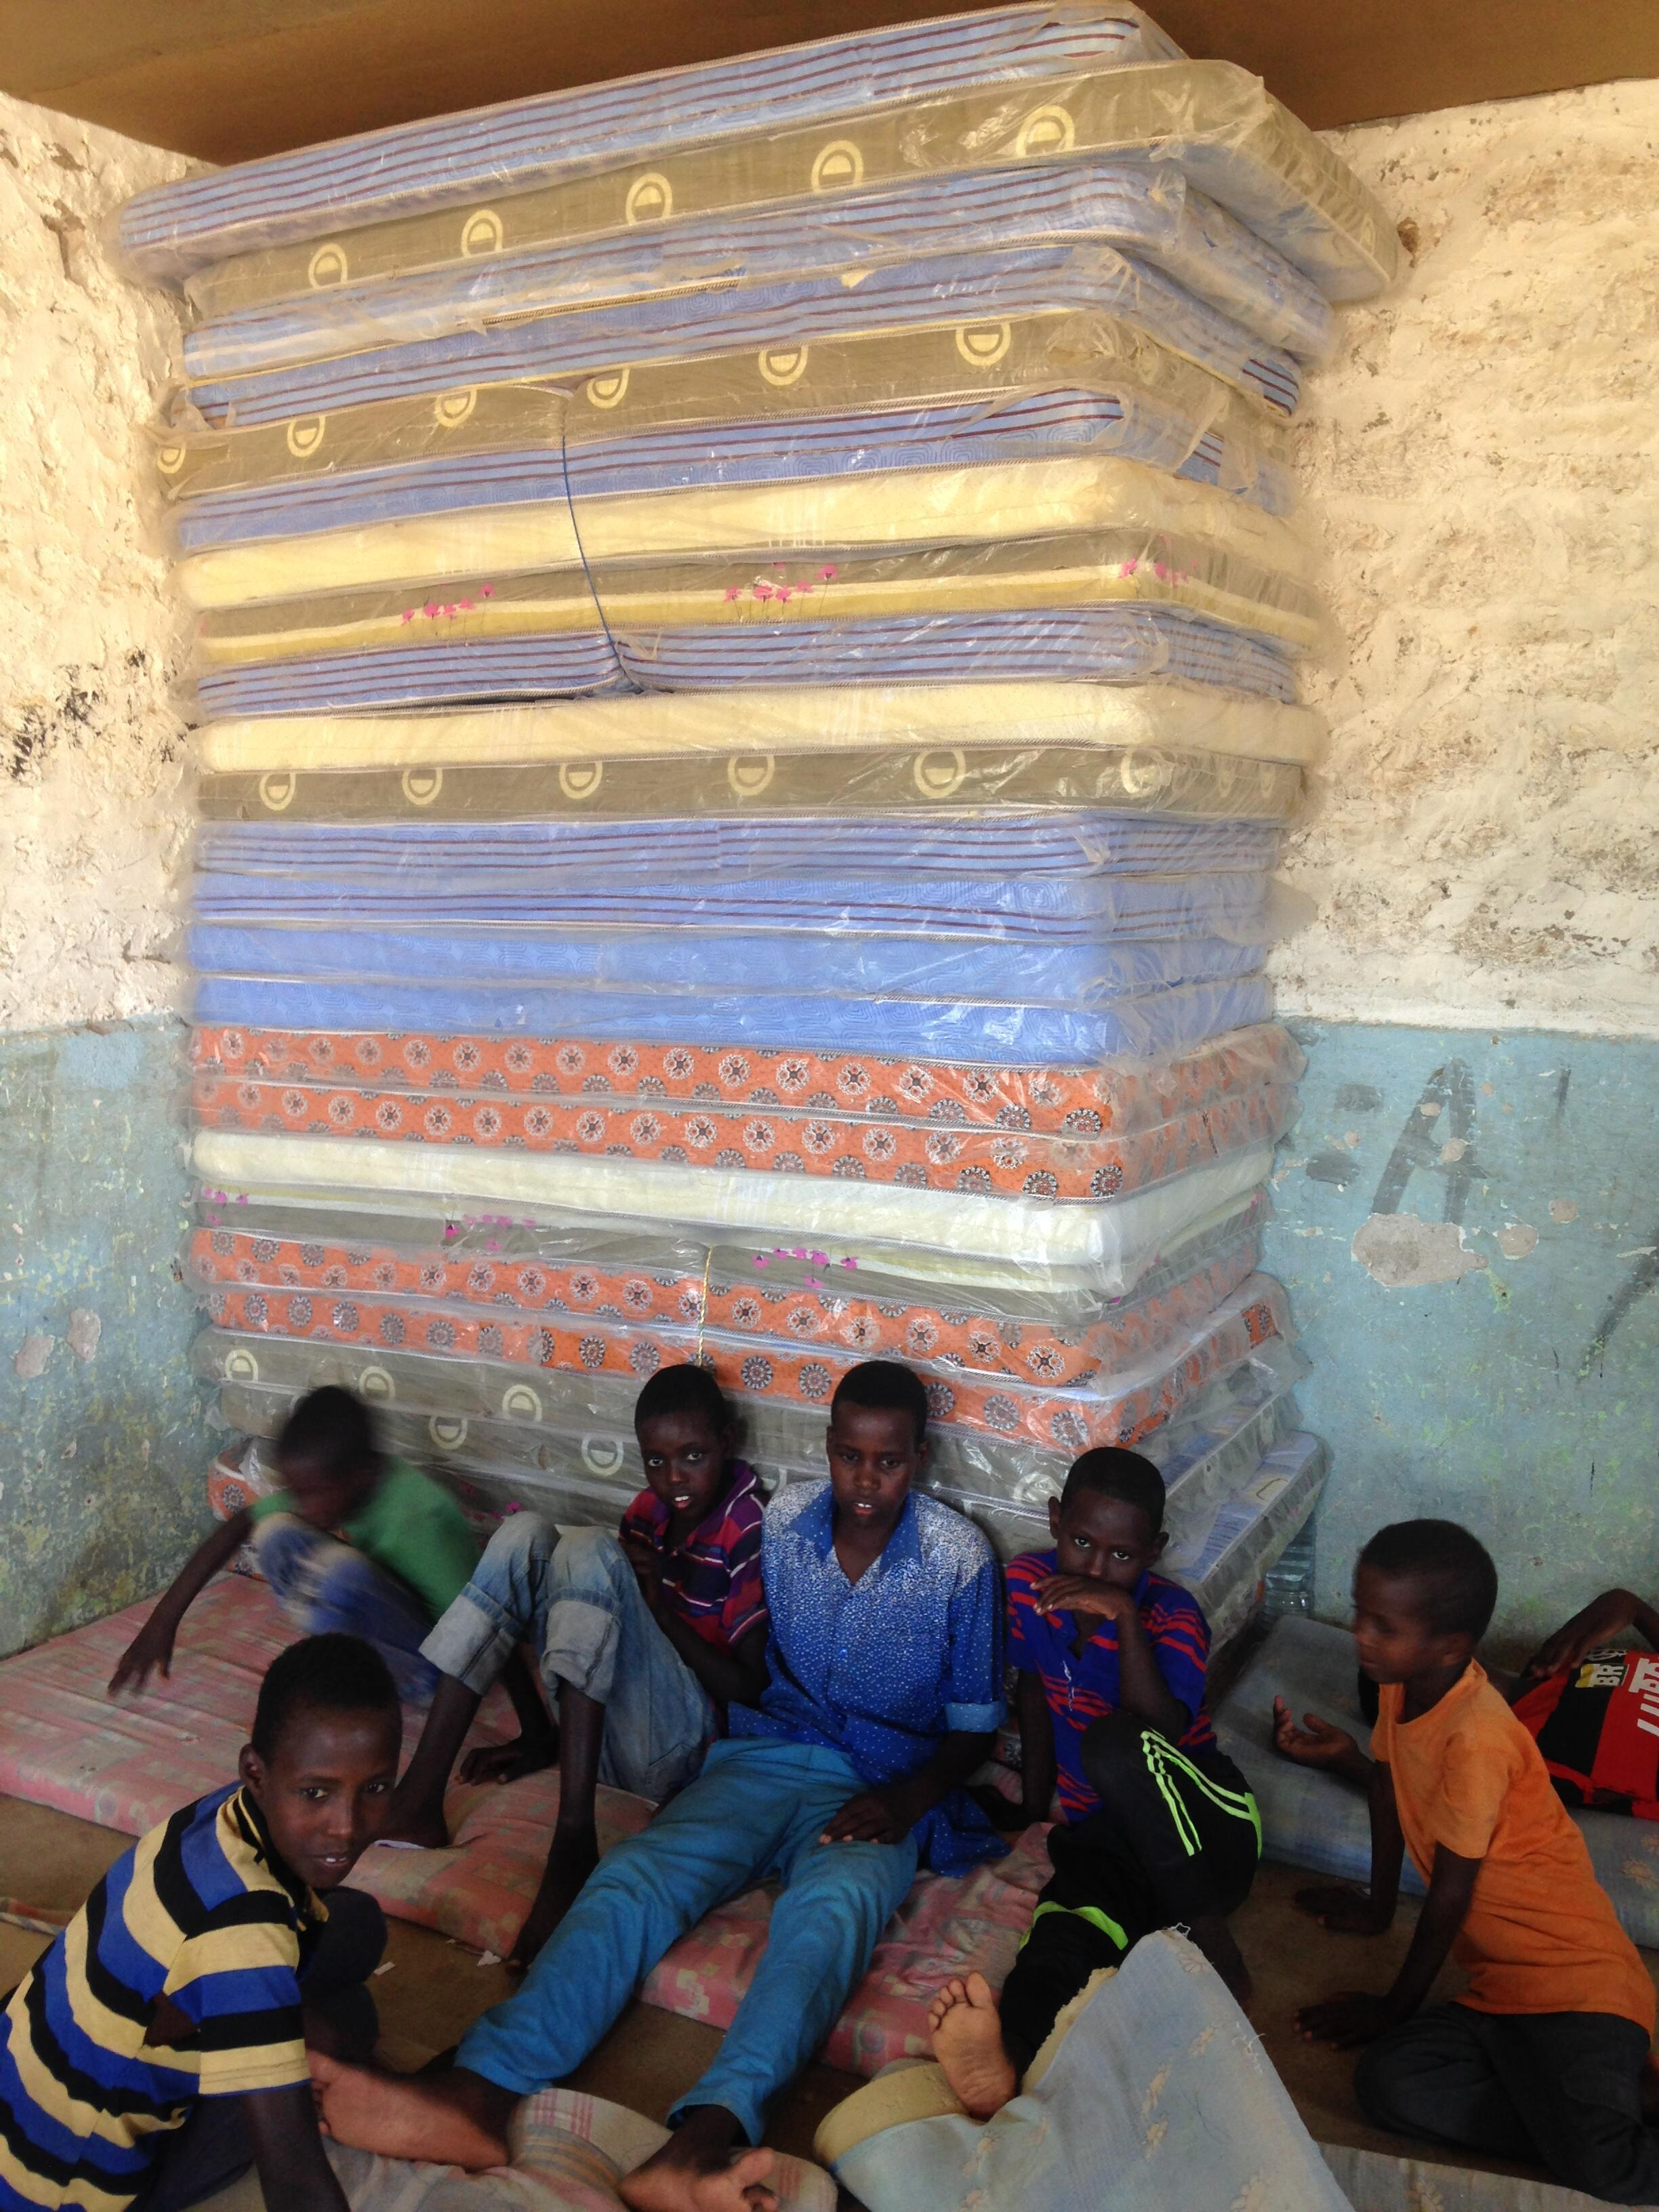 Schoolboys in rural Somaliland relax among mattresses in their classroom/dormitory